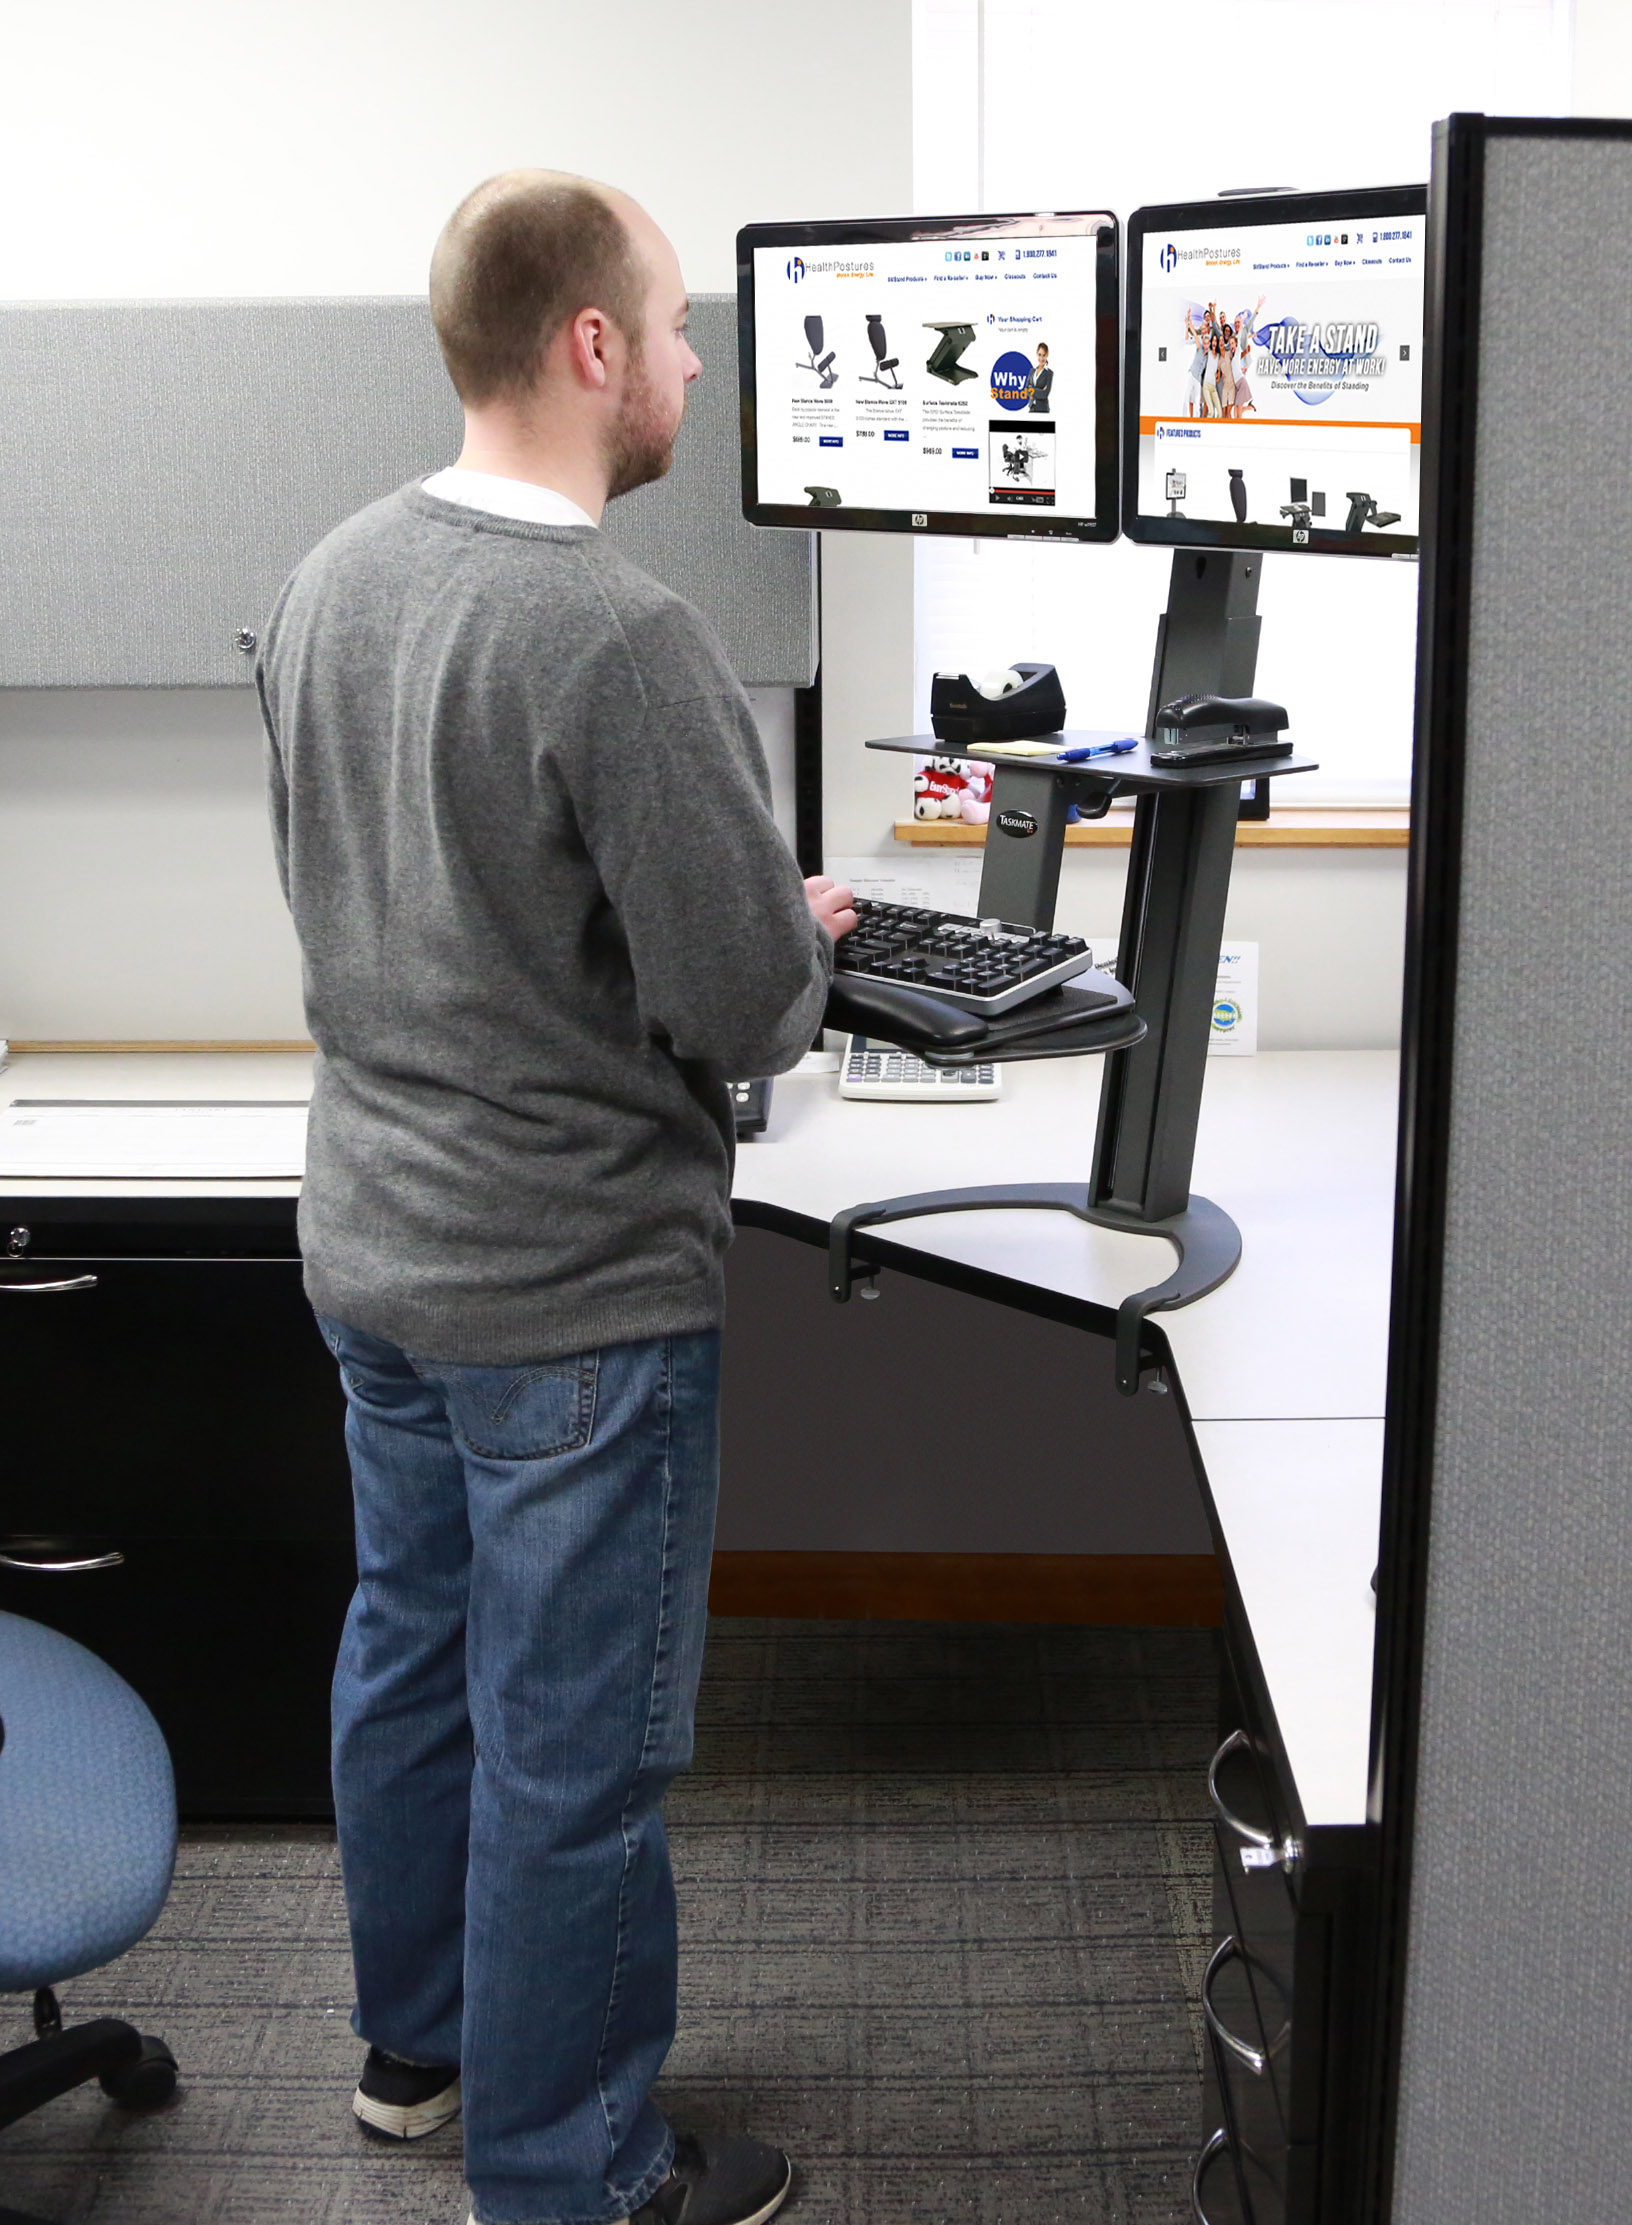 Health Postures And Electronic Office Environments